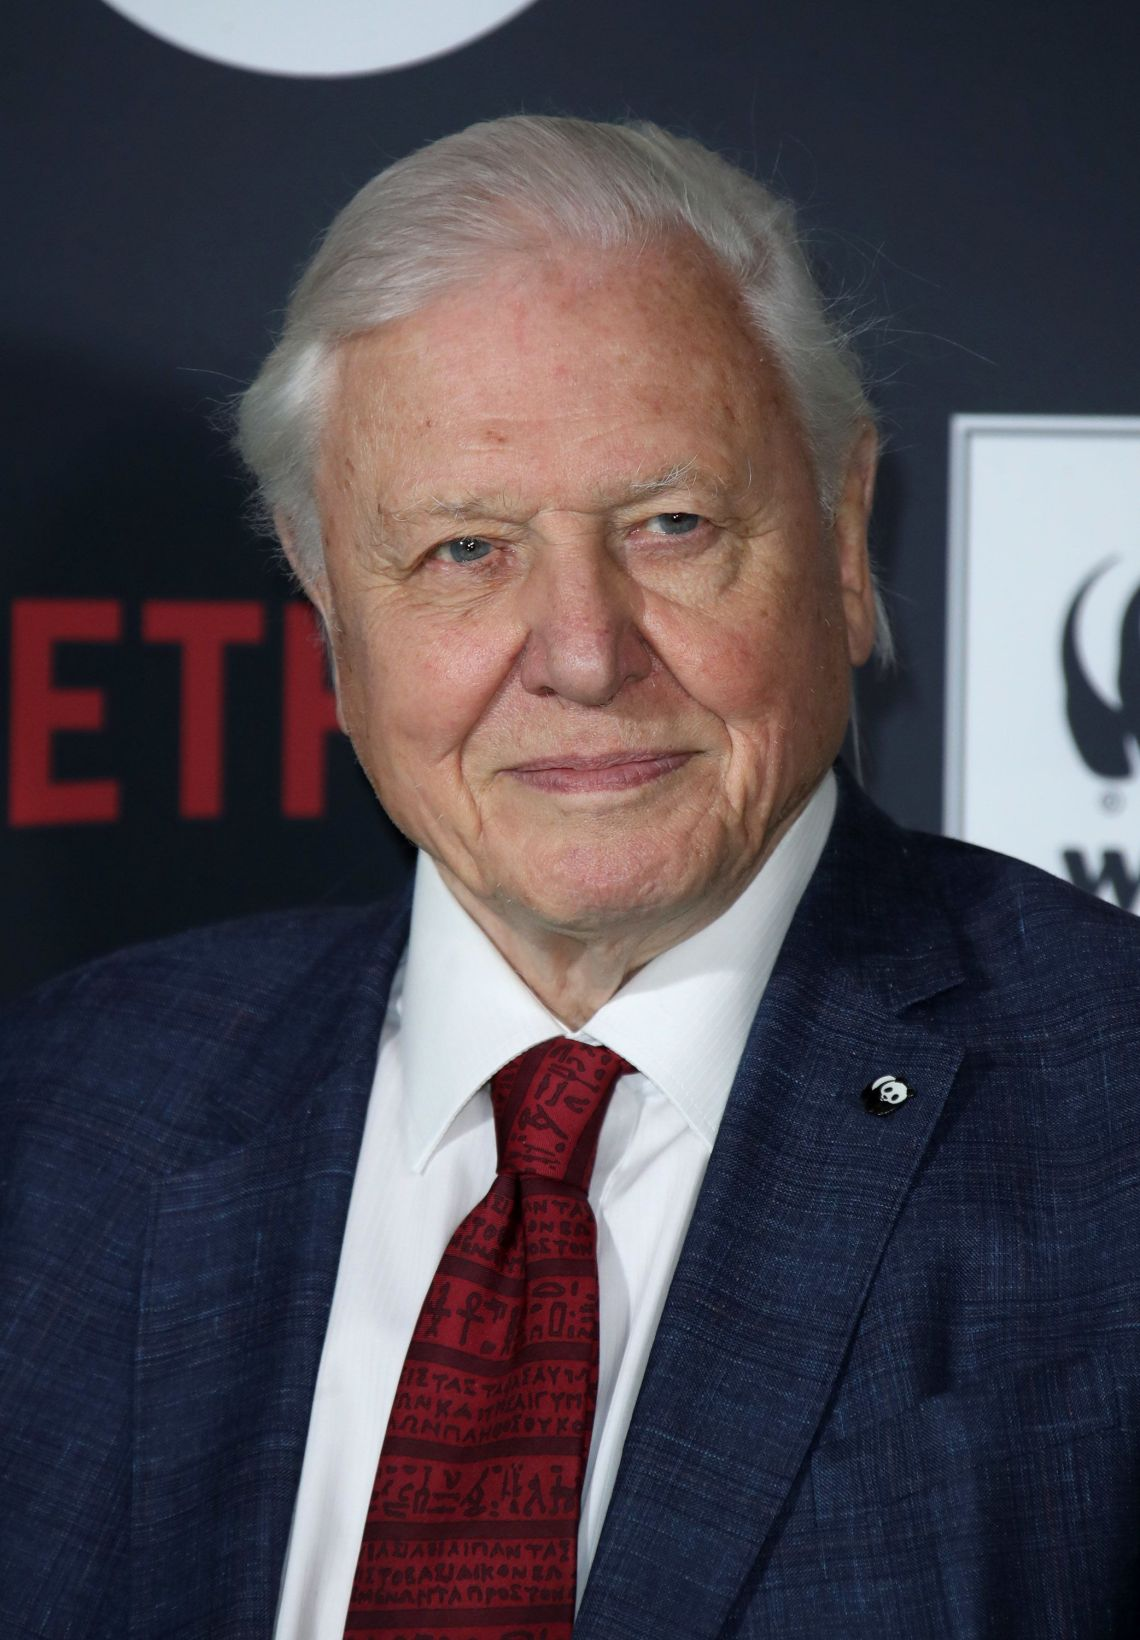 Sir David Attenborough is to narrate a new nature documentary for streaming giant Netflix.